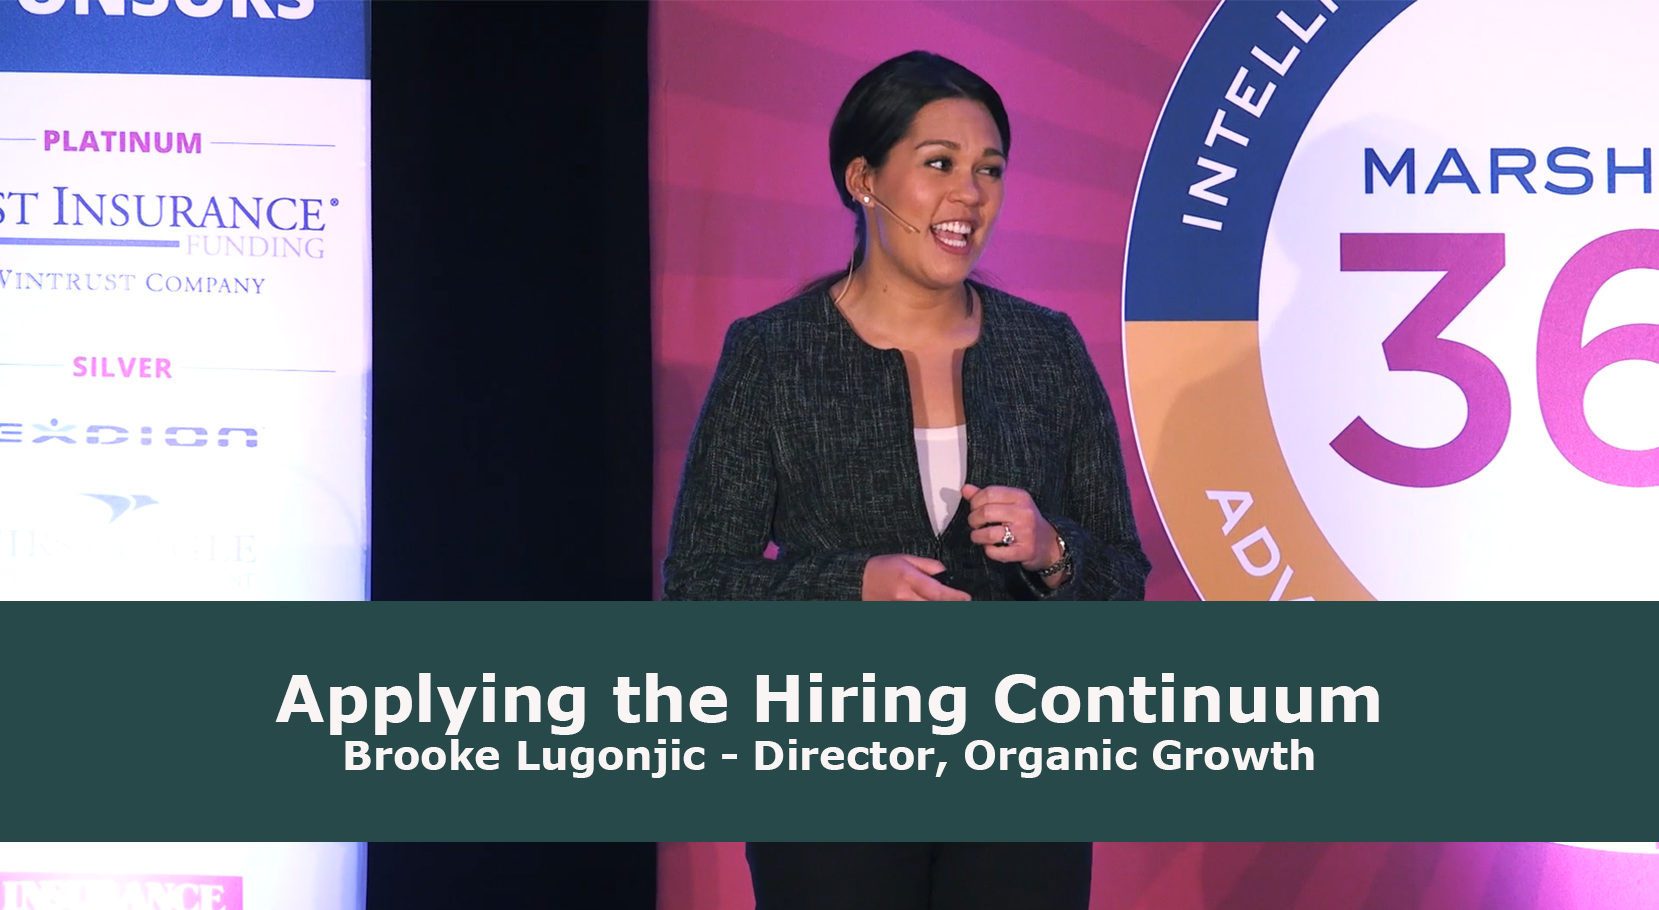 How to apply the Hiring Continum